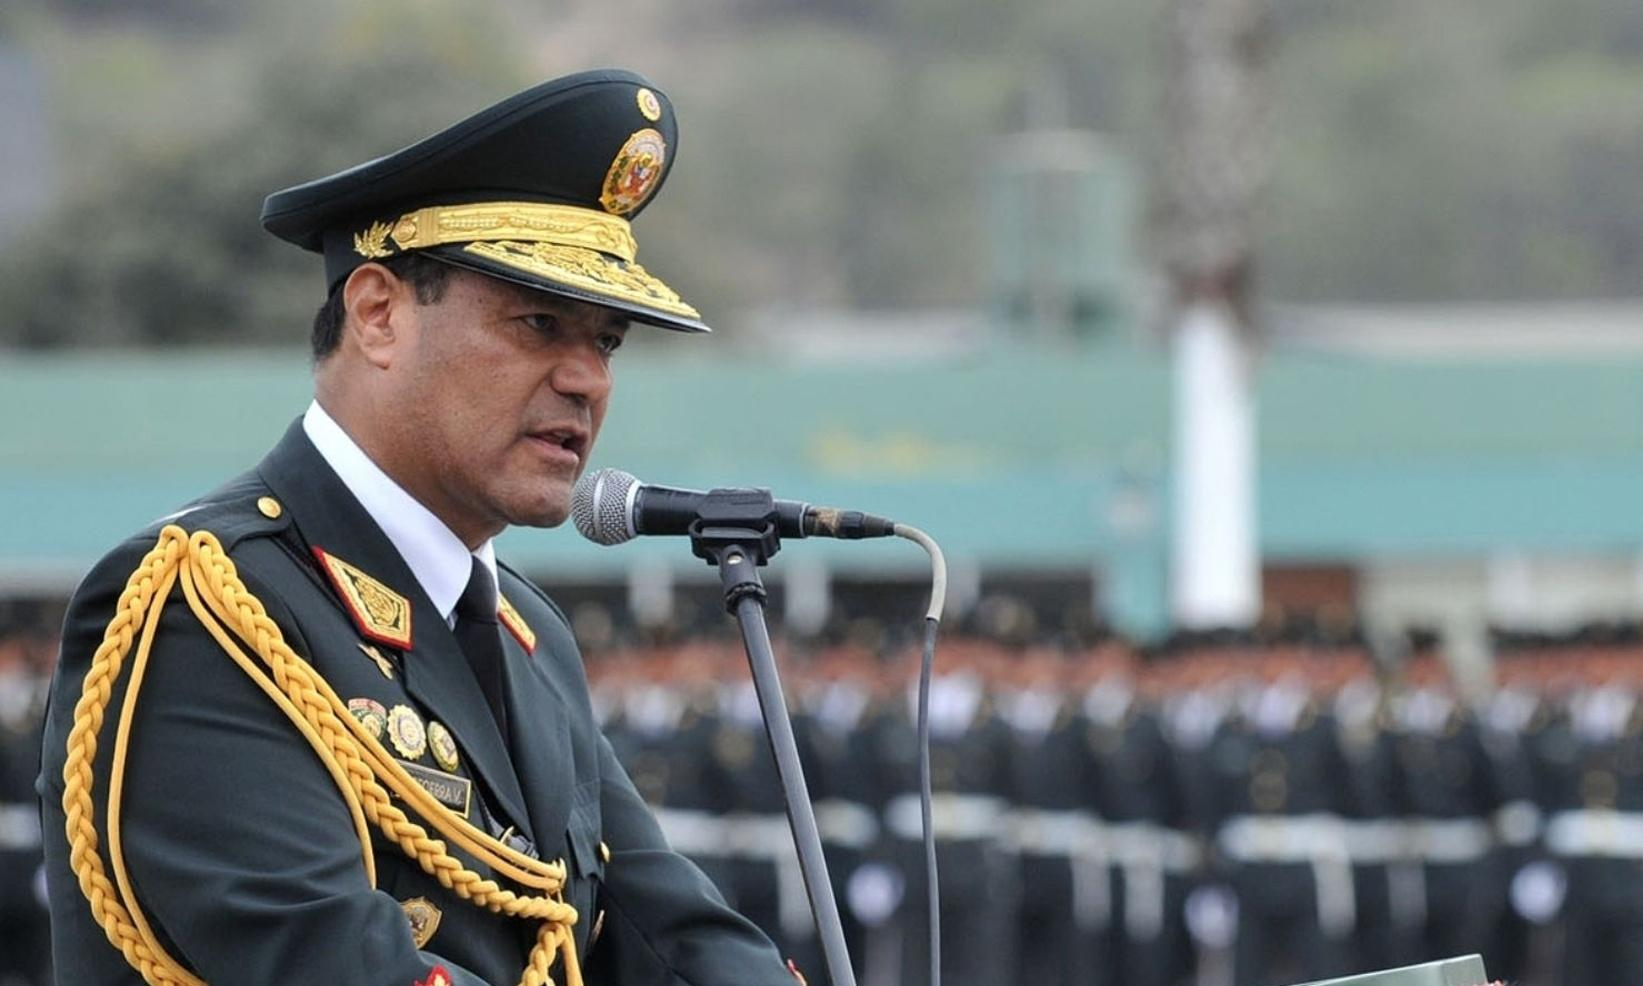 Peru: ex-chief of national police arrested for alleged role in baby trafficking ring